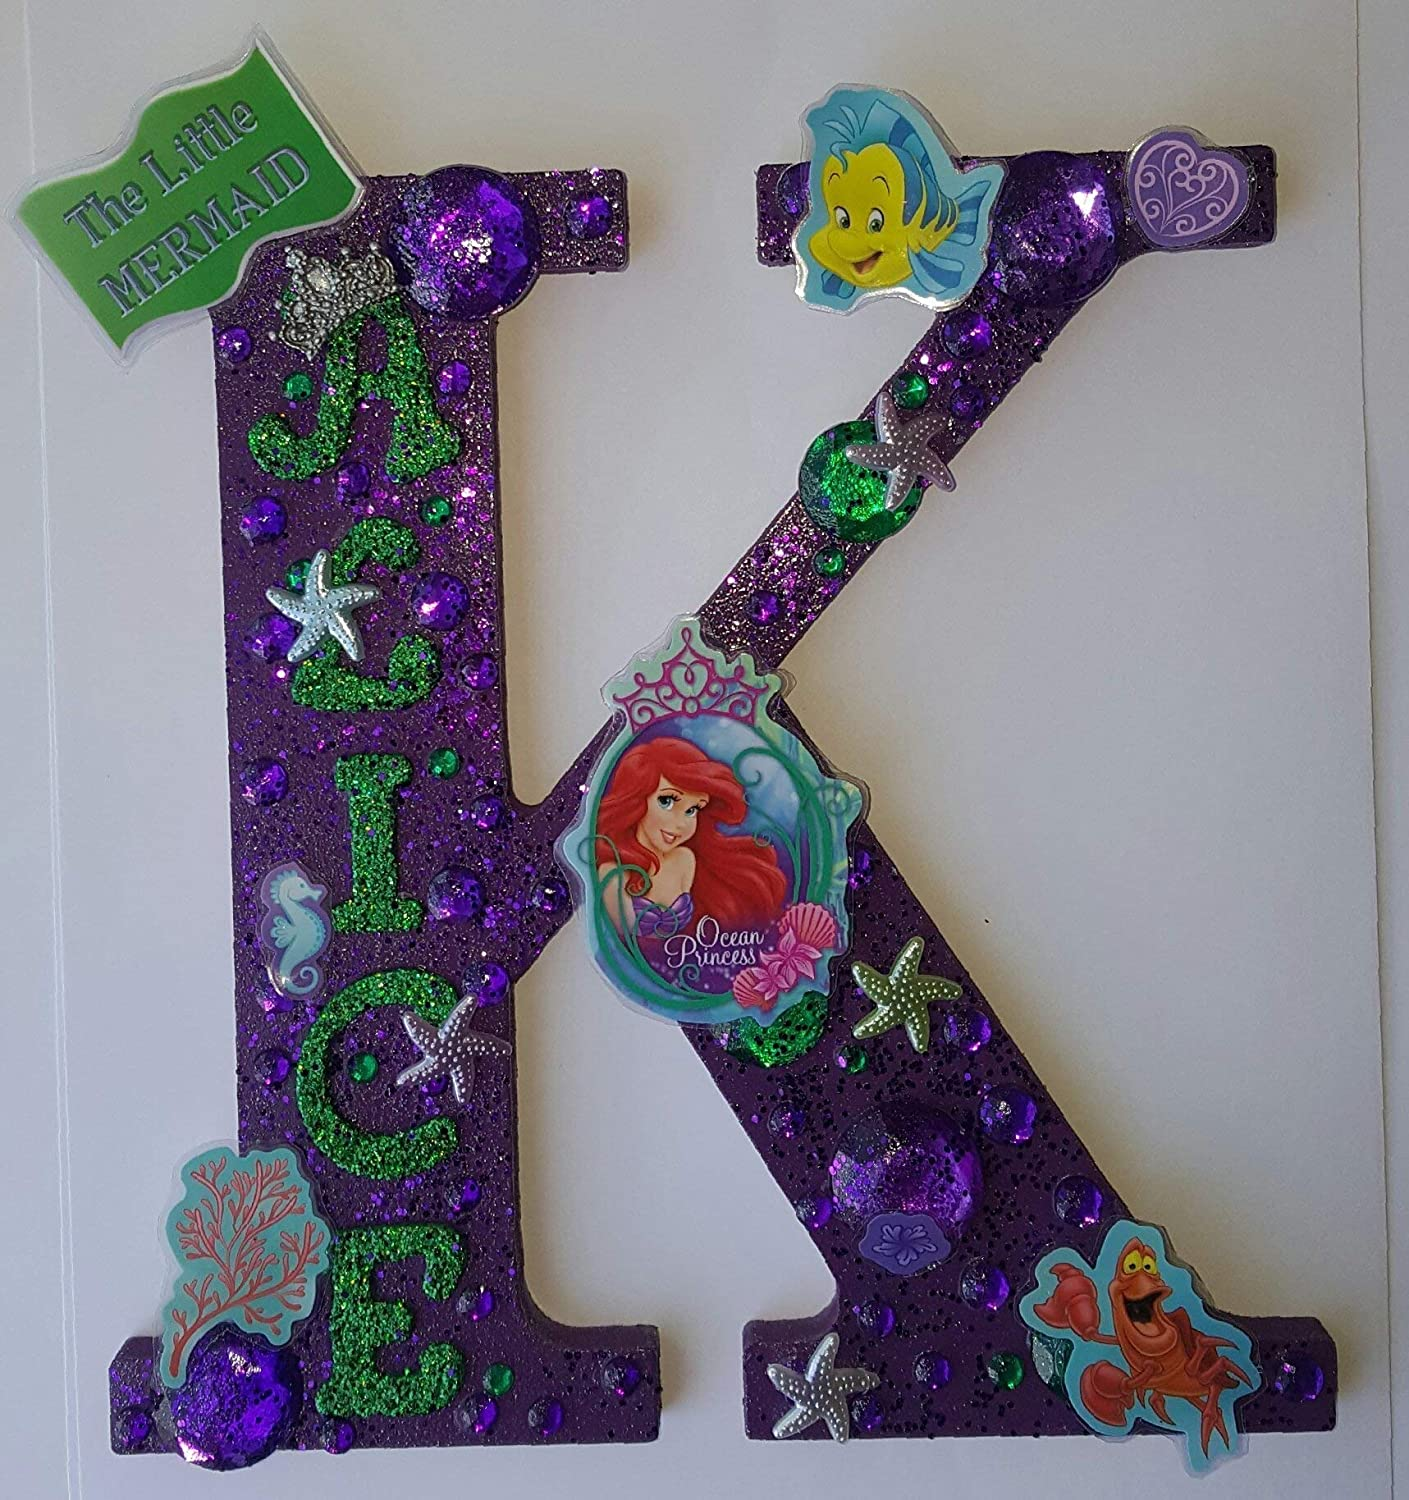 Amazoncom Ariel The Little Mermaid Wooden Letters Large8 Any